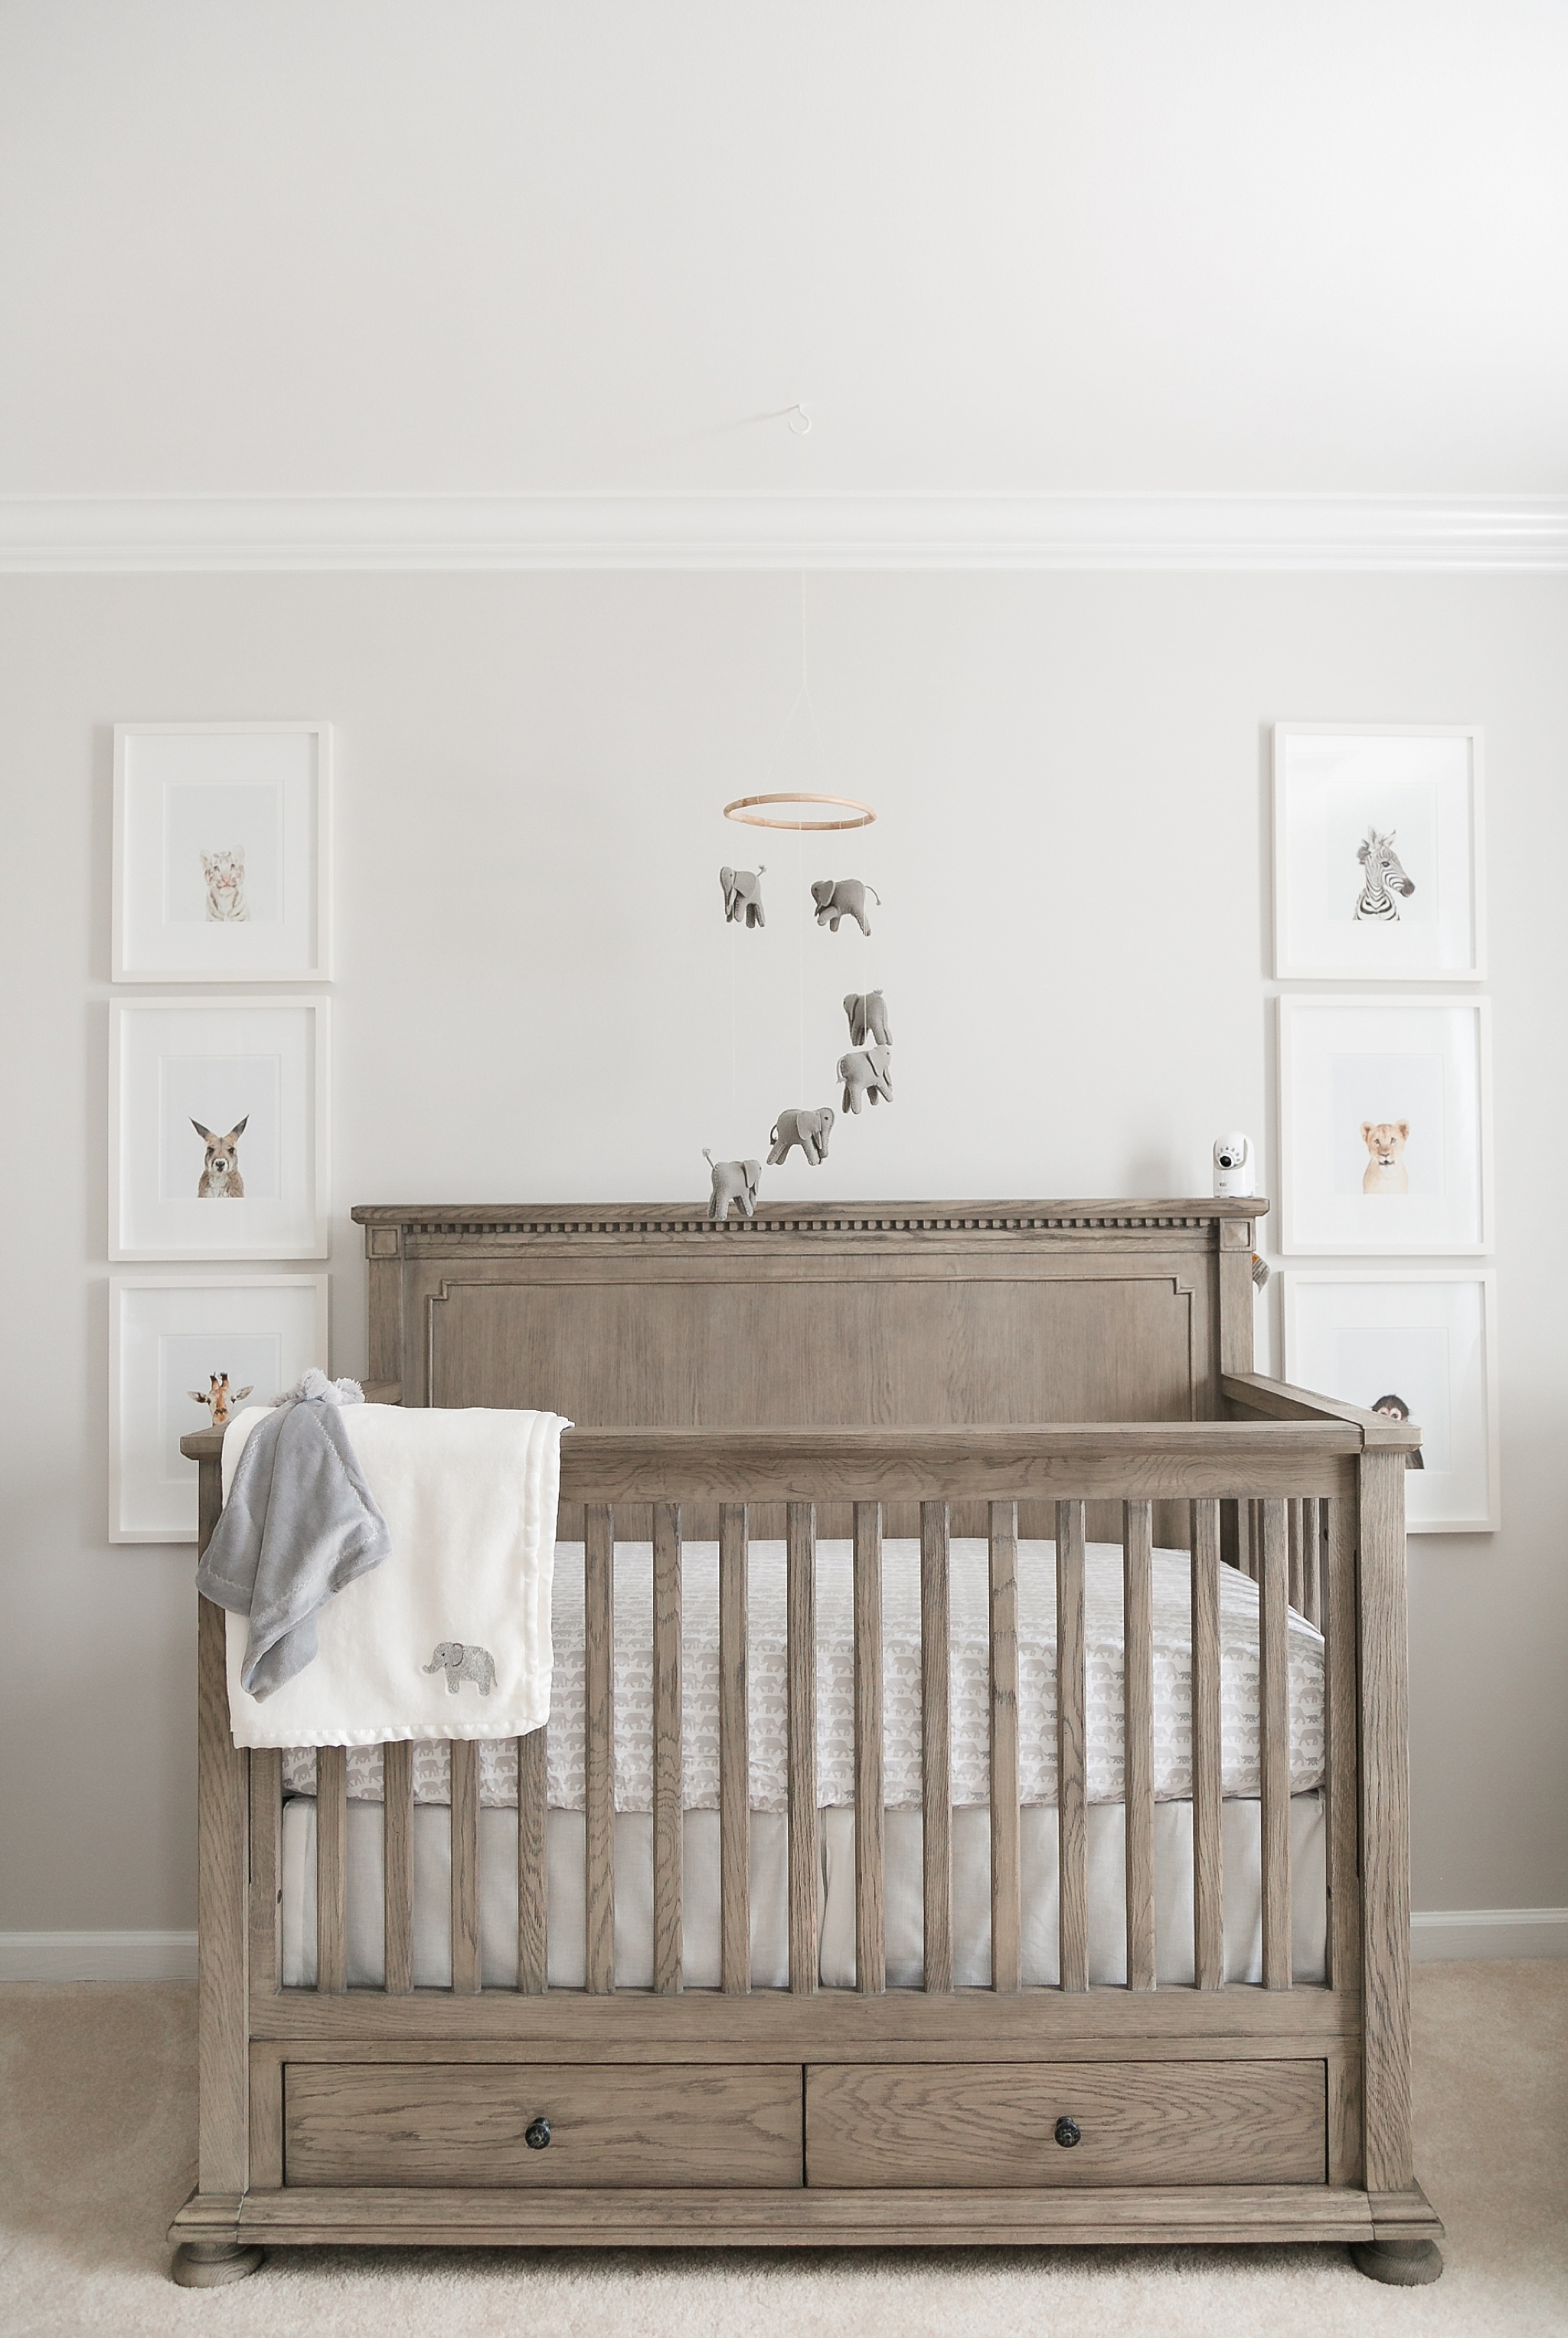 Ideal Blue Nursery A Baby Boy Features Restorationhardware Our Baby Grey Elephant Nursery Baby Boy Nursery Fabric Baby Boy Nursery Decor An This Grey baby shower Baby Boy Nursery